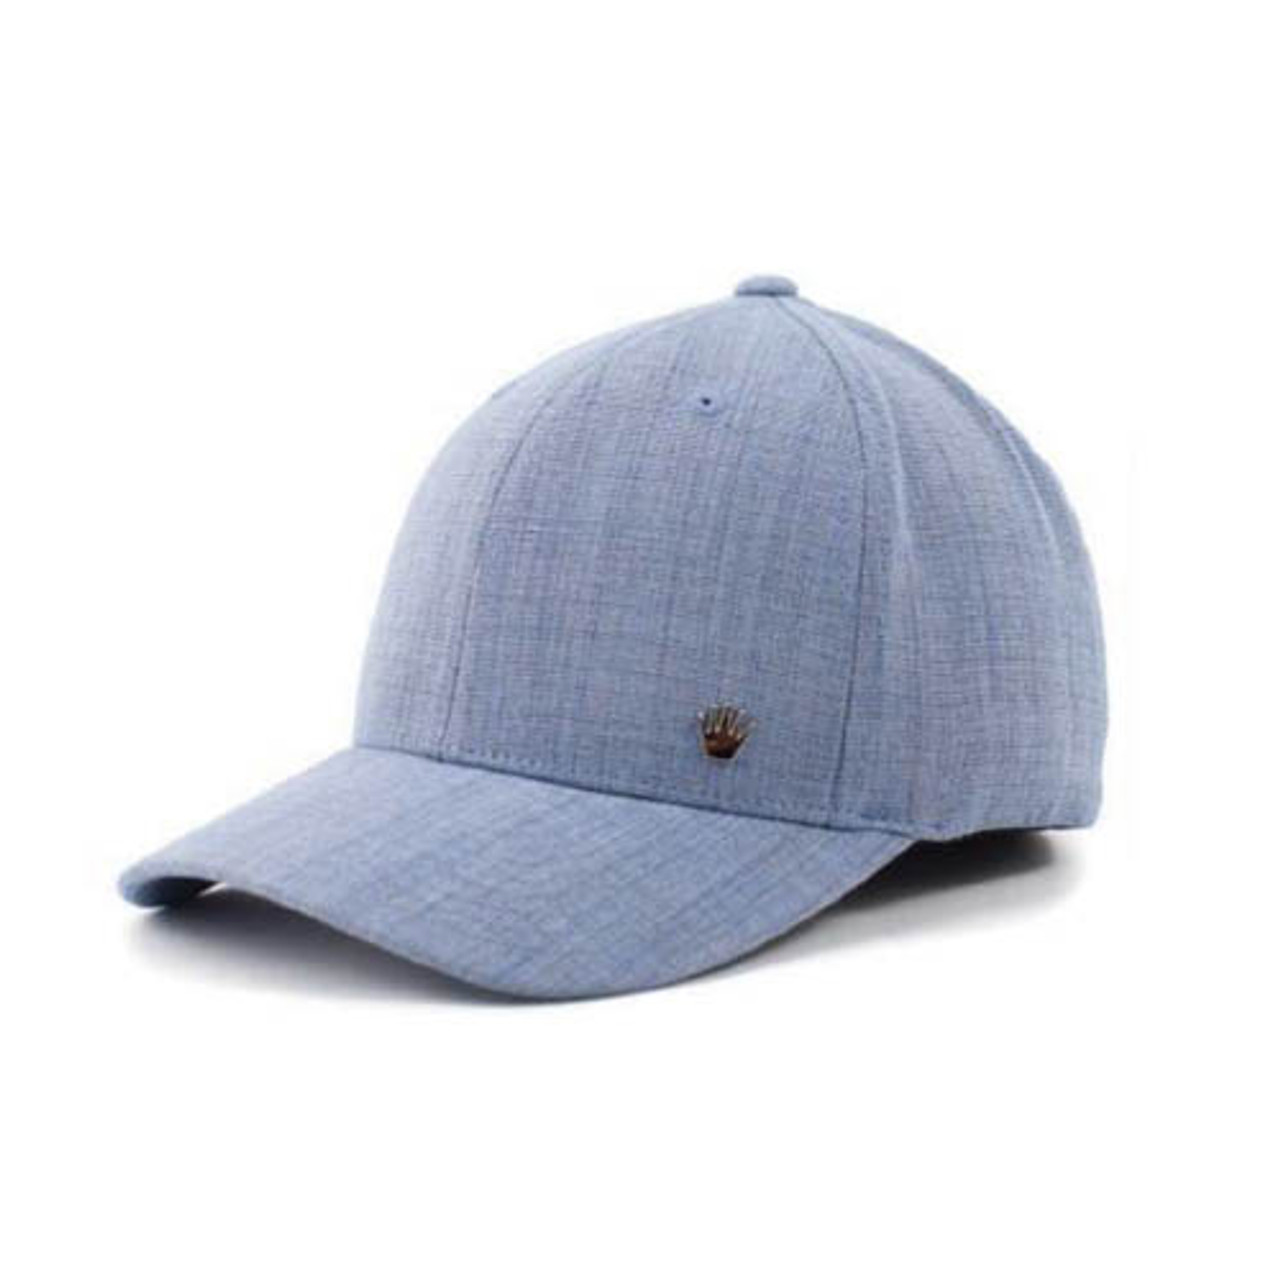 280f0c9e565188 No Bad Ideas - Flexfit Cap - Perry (Blue)